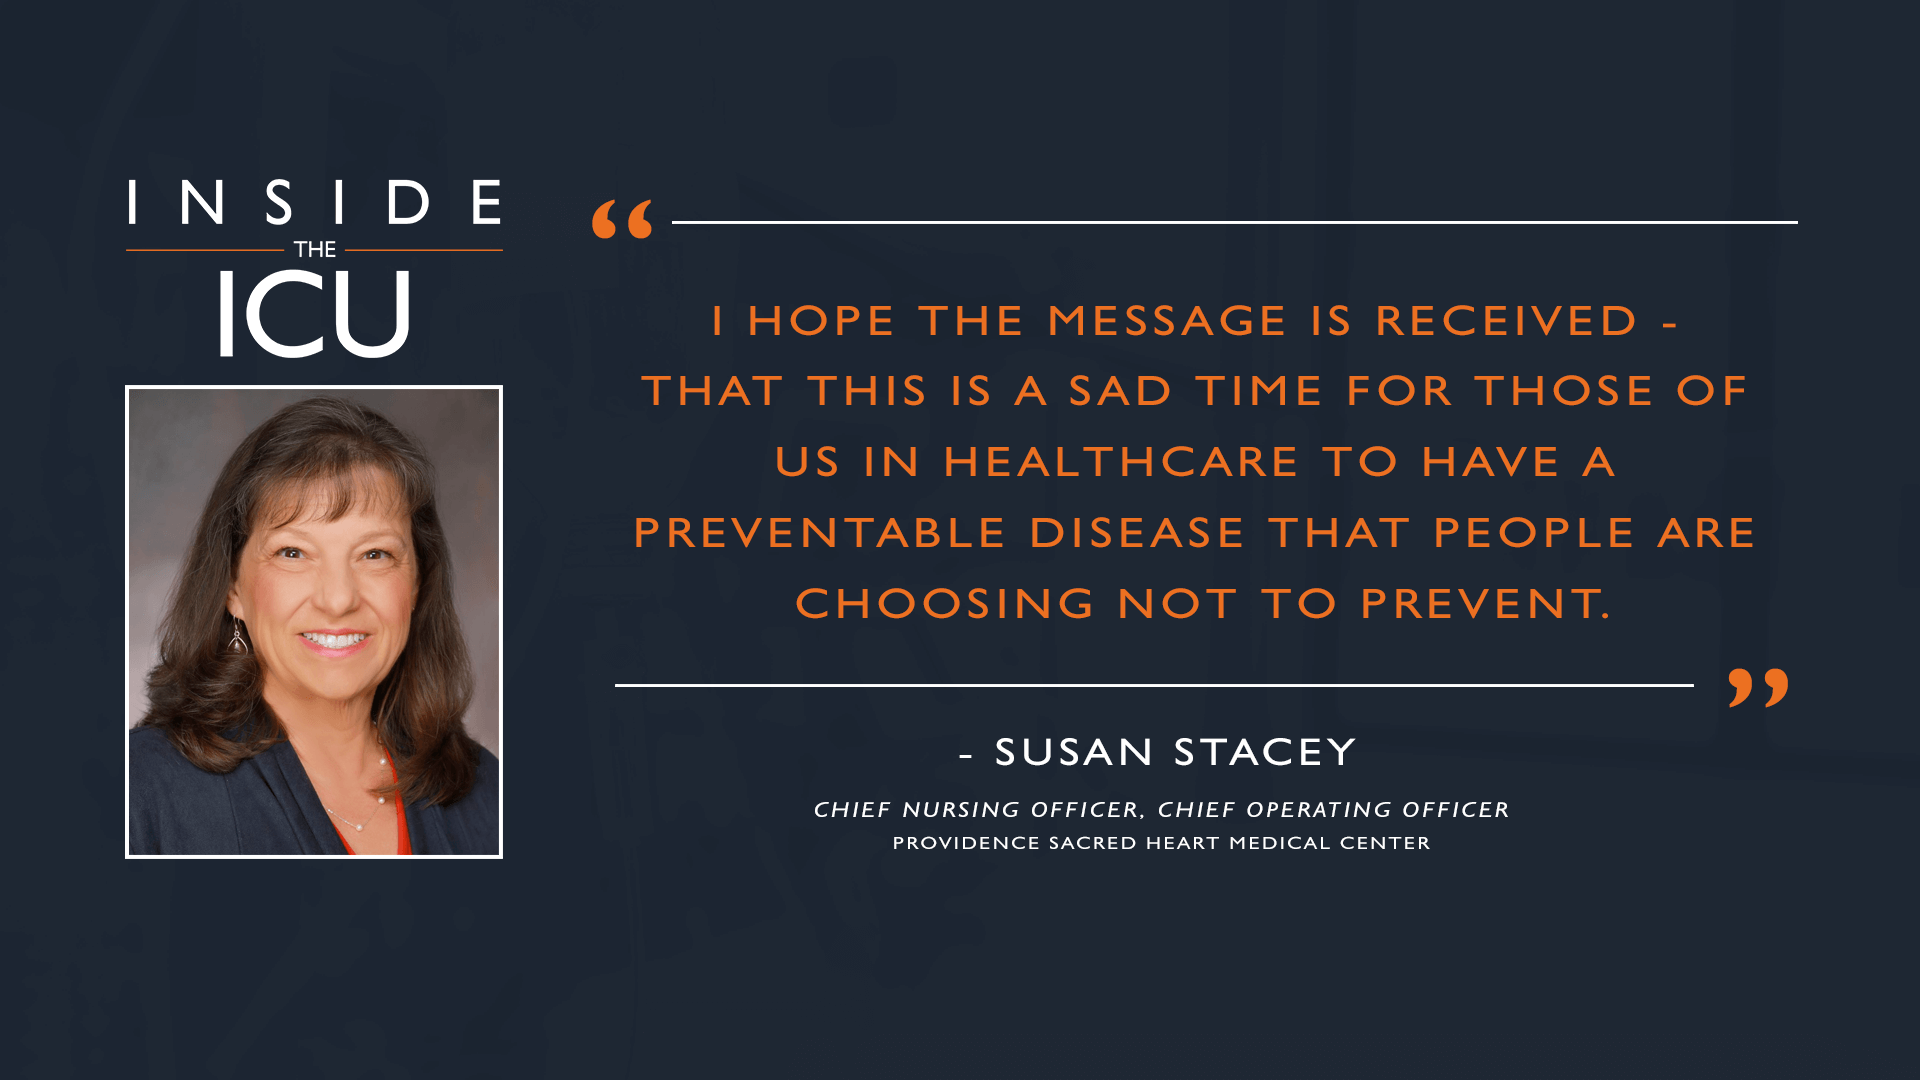 Susan Stacey Icu Quote 1